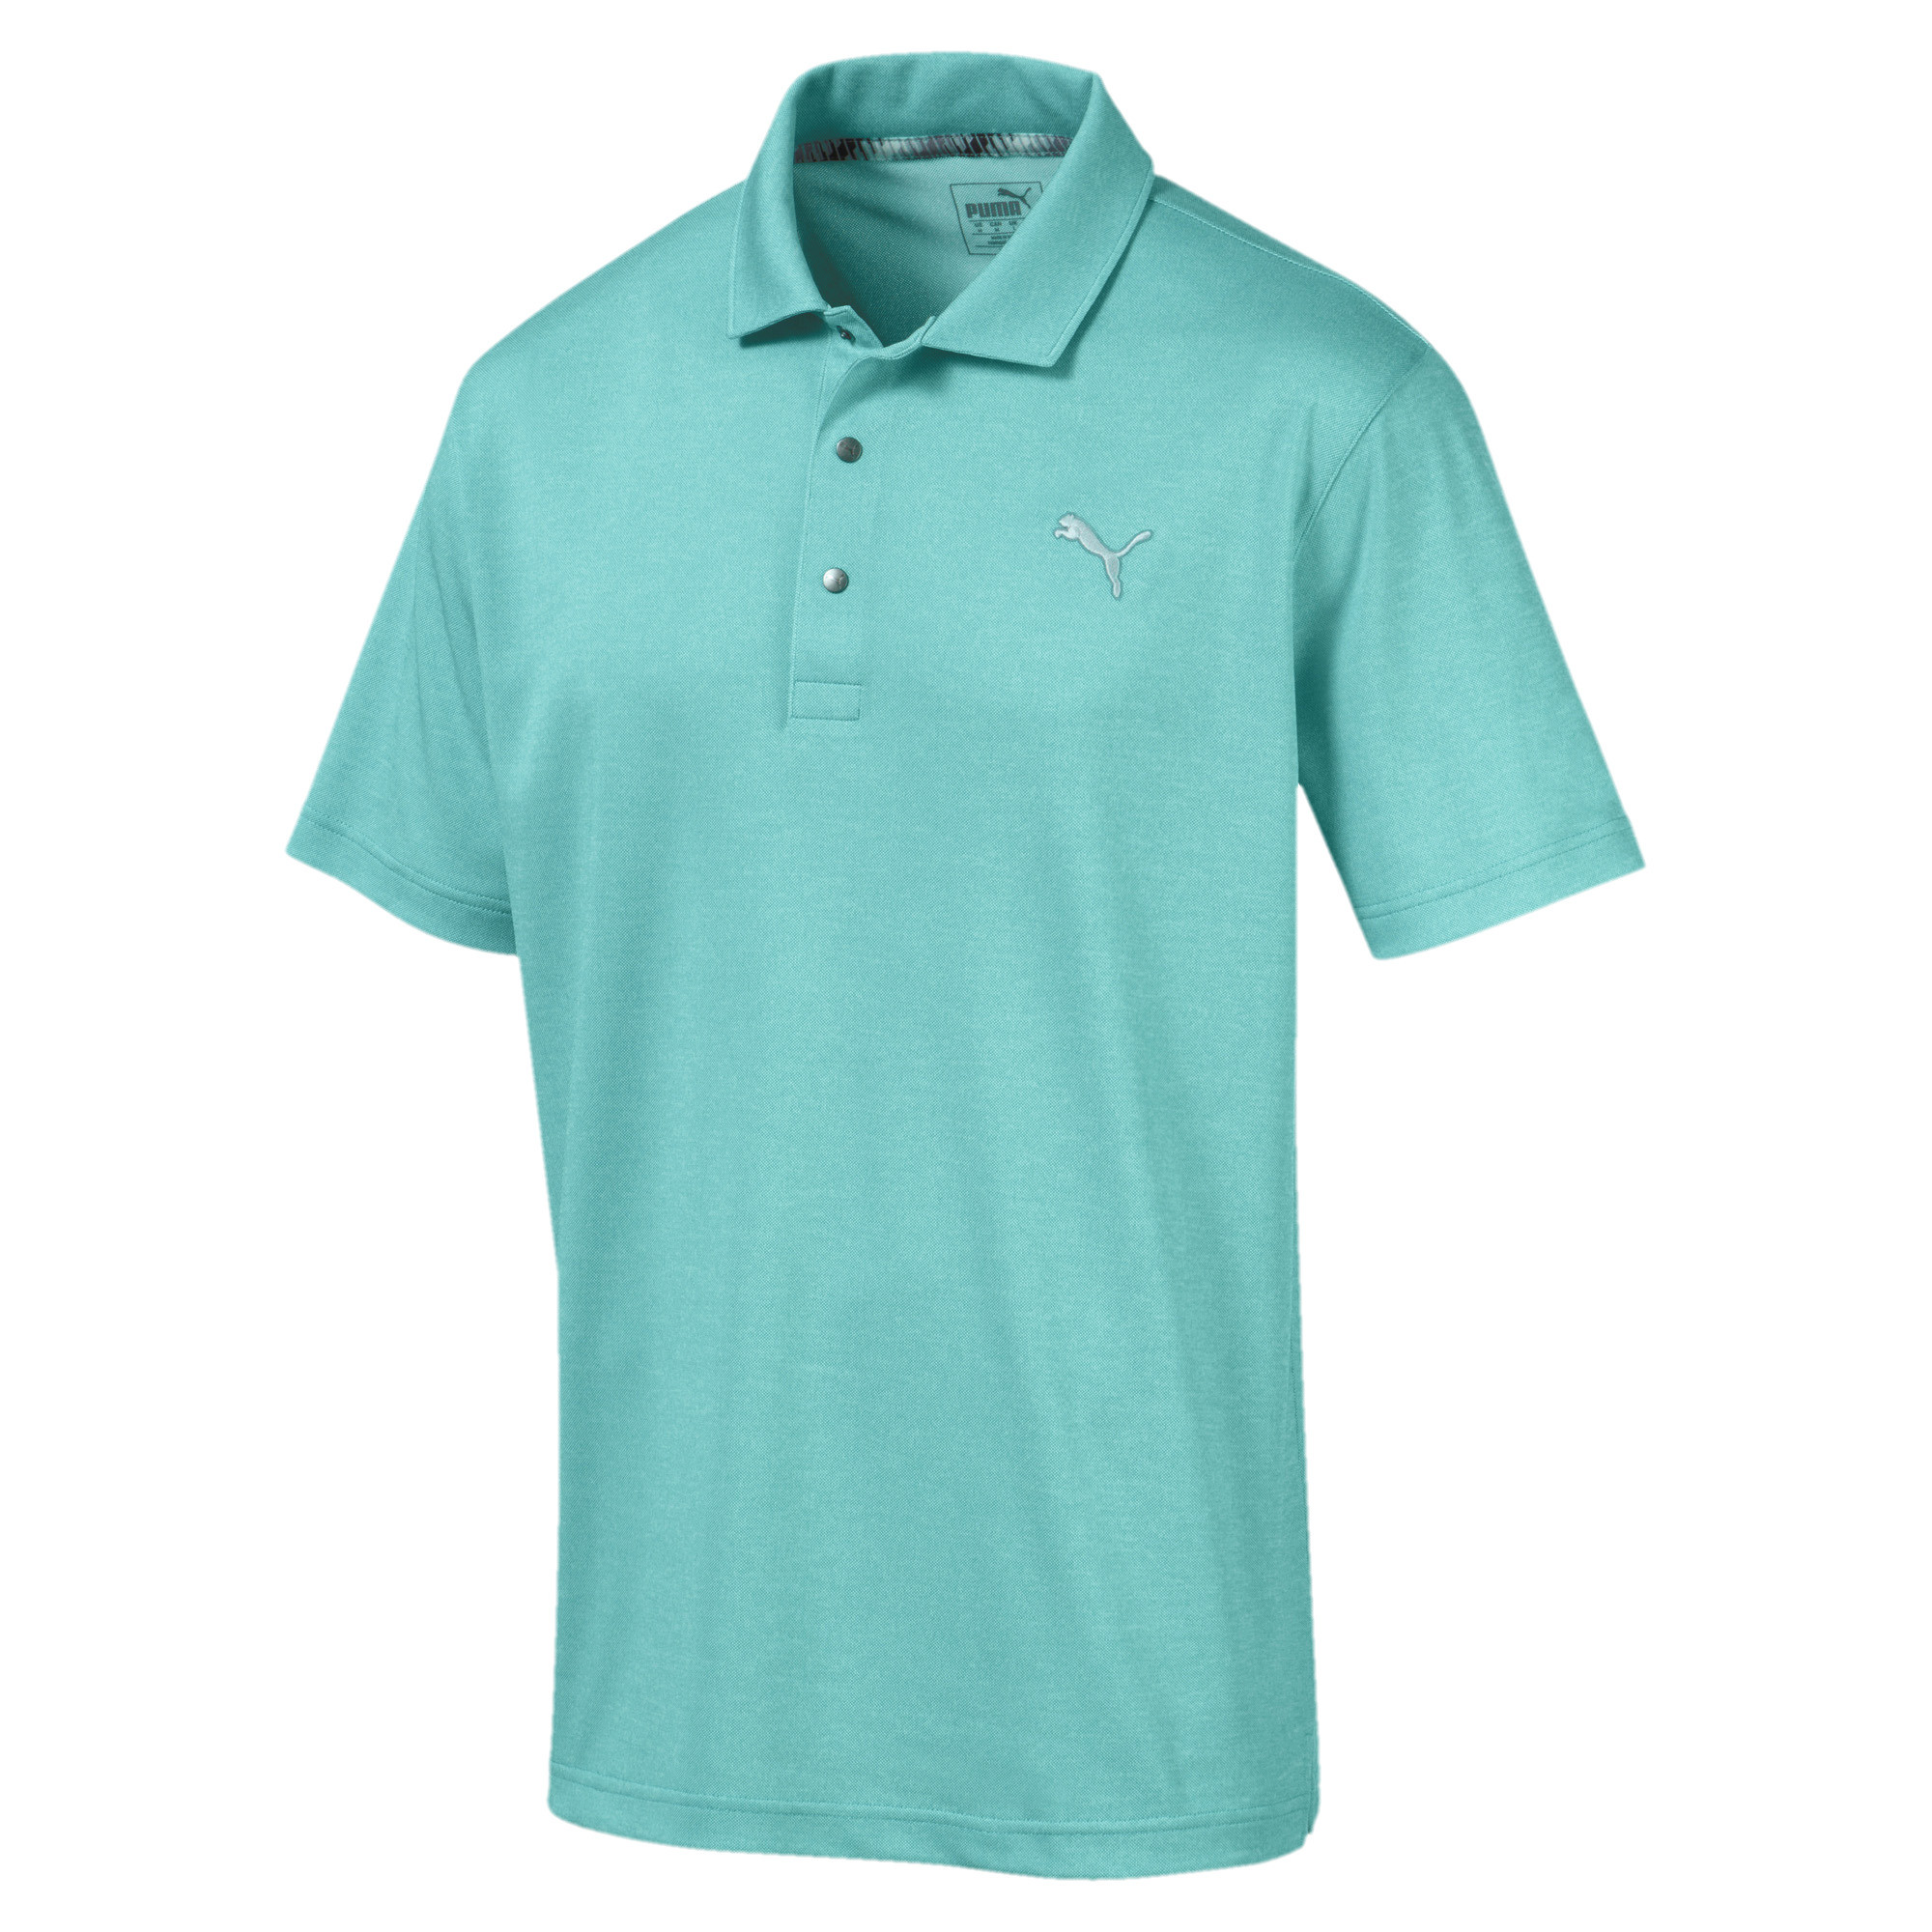 Image of Grill to Green Men's Golf Polo